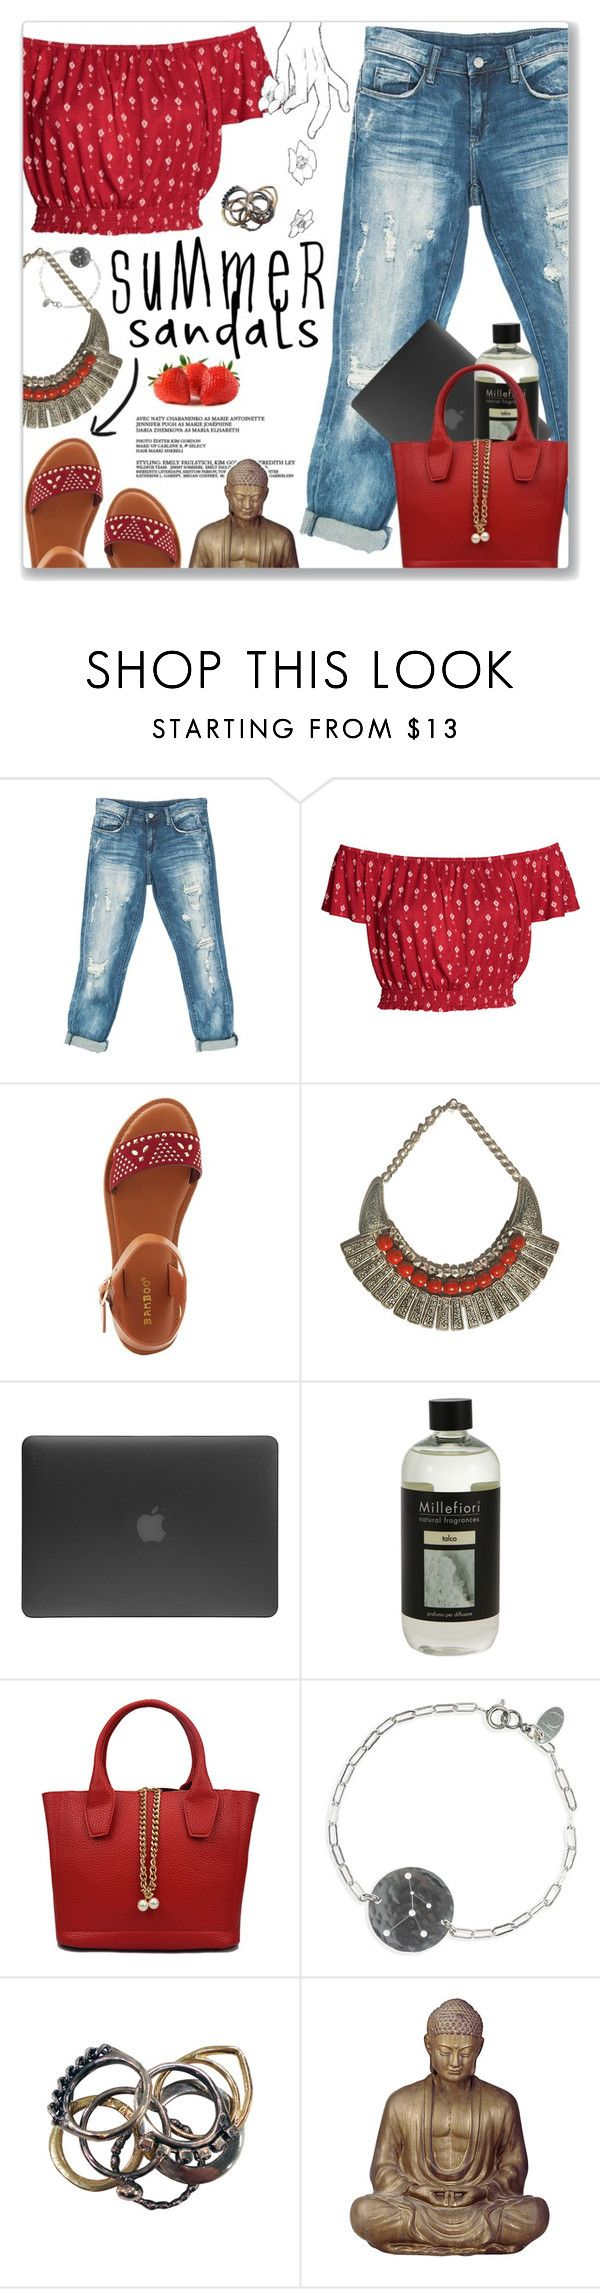 """Bobo, J Balvin"" by blendasantos ❤ liked on Polyvore featuring Sans Souci, Bamboo, Incase, Millefiori, Wildfox, IJA, Iosselliani and summersandals"